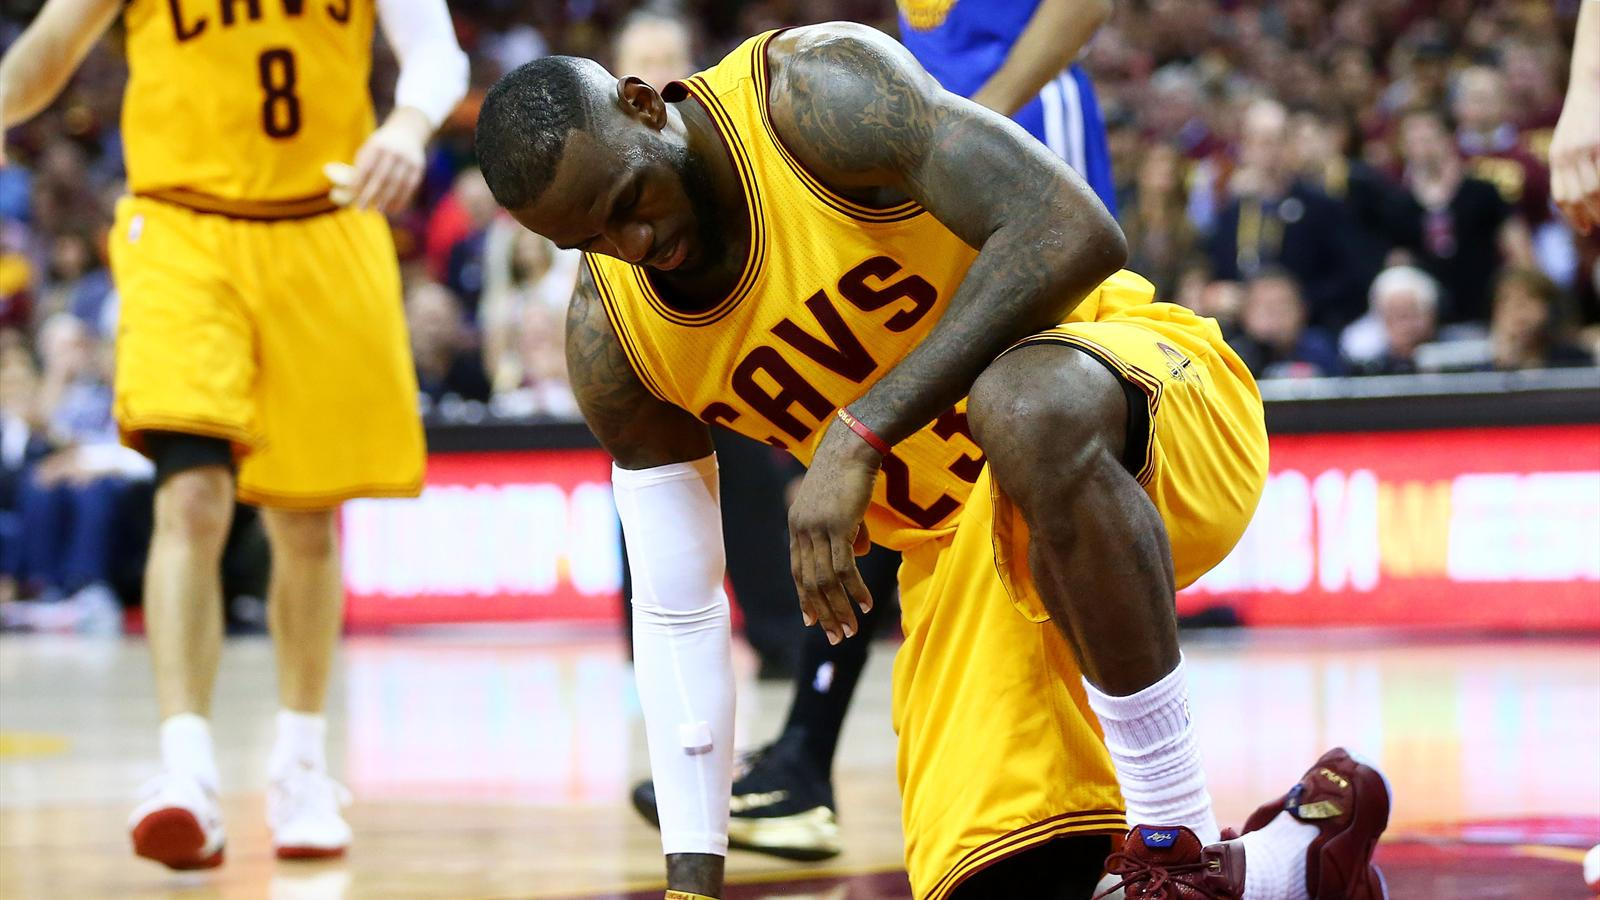 LeBron James of the Cleveland Cavaliers against the Golden State Warriors in game four of their NBA finals series